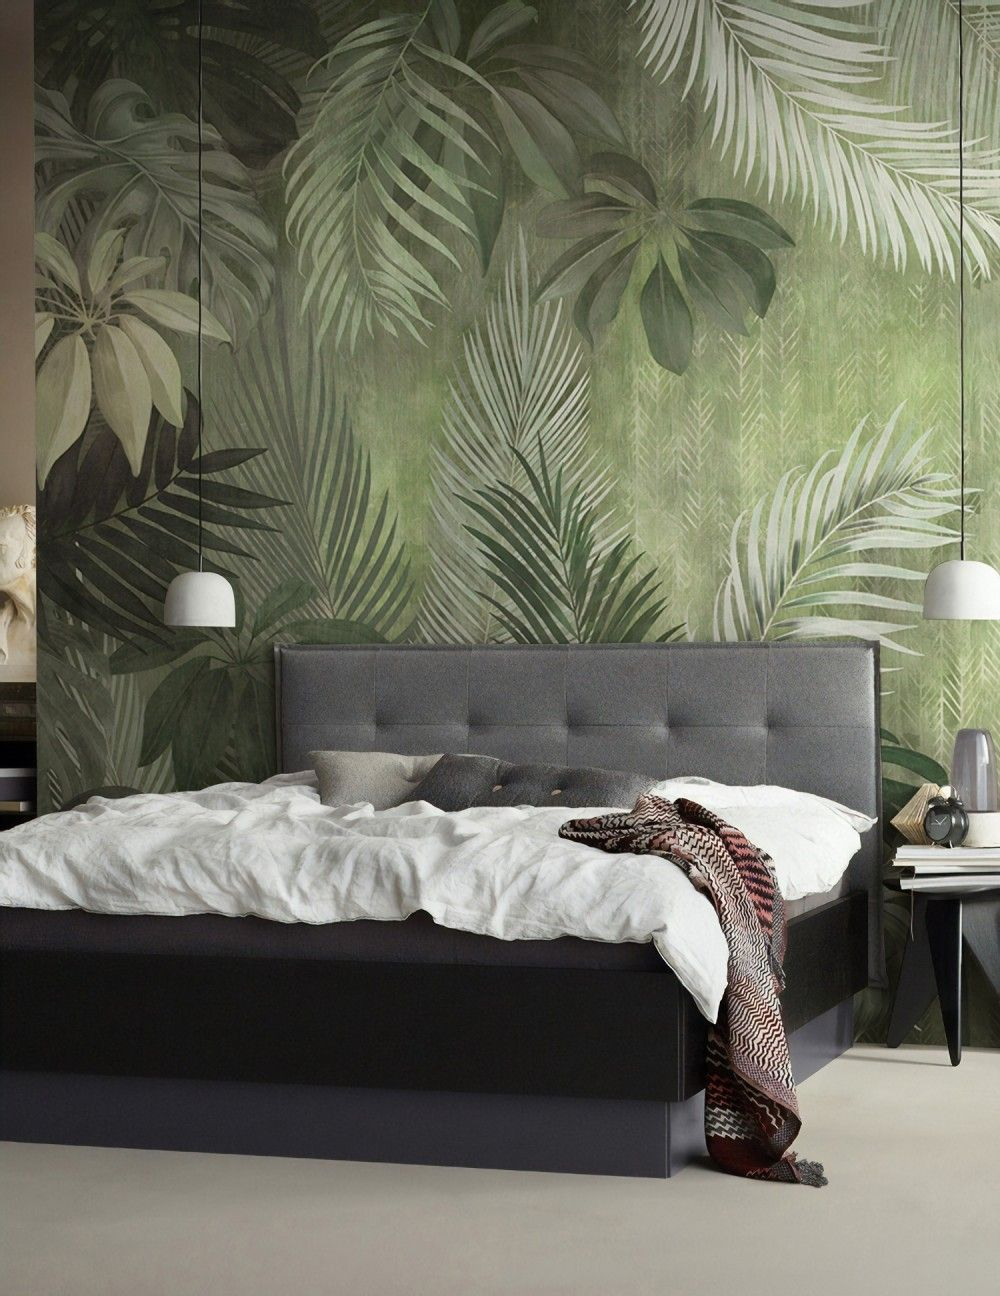 25 Restaurants Hotels With The Most Beautiful Wallpaper Coffee Shop Interior Design Most Beautiful Wallpaper Tropical Style Interior